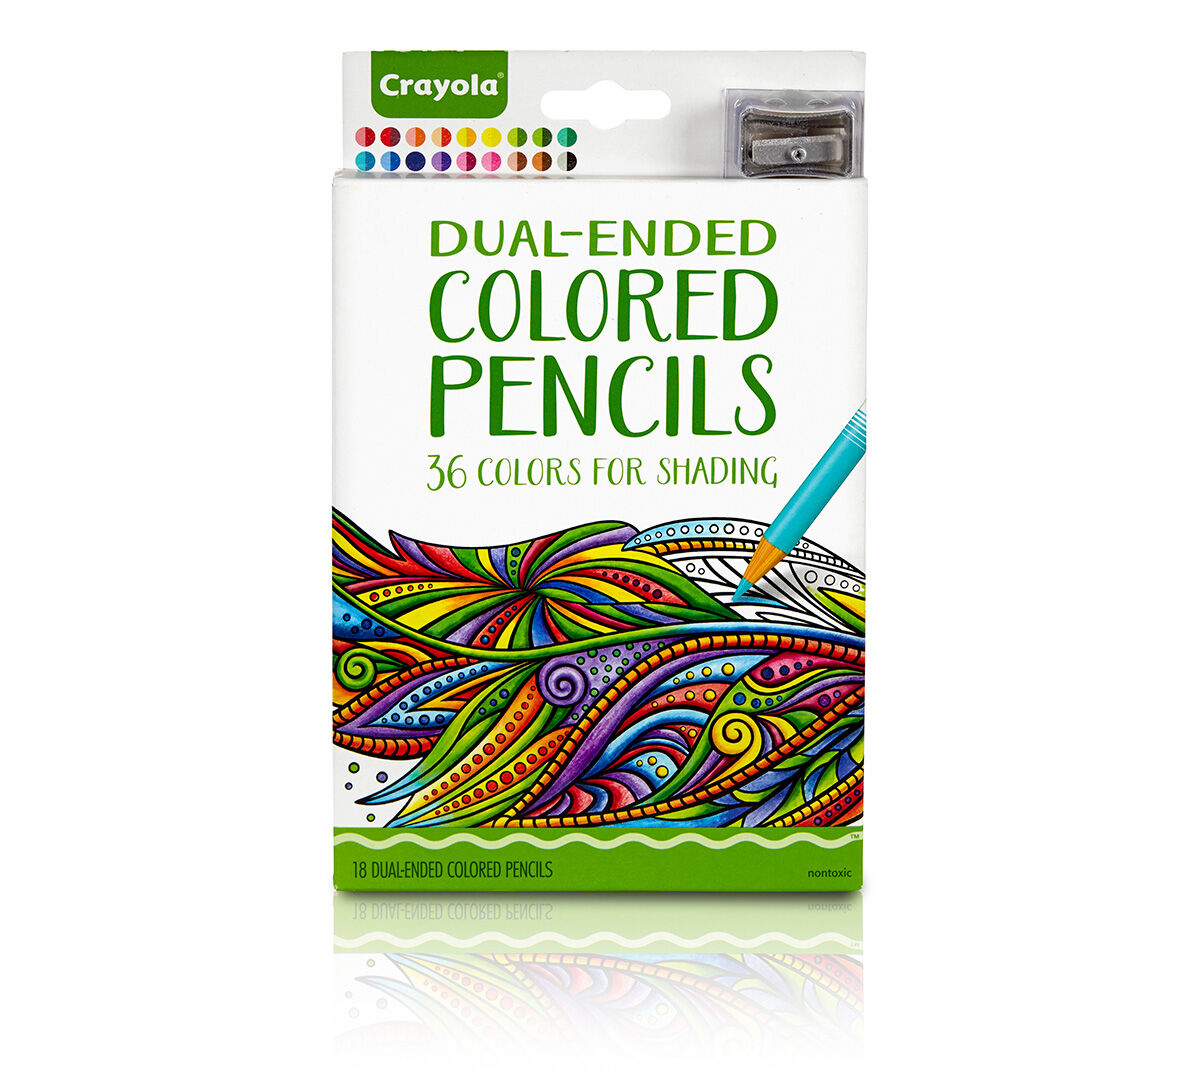 Crayola Dual-Ended Colored Pencils; Art Tools; Complementary Colors ...